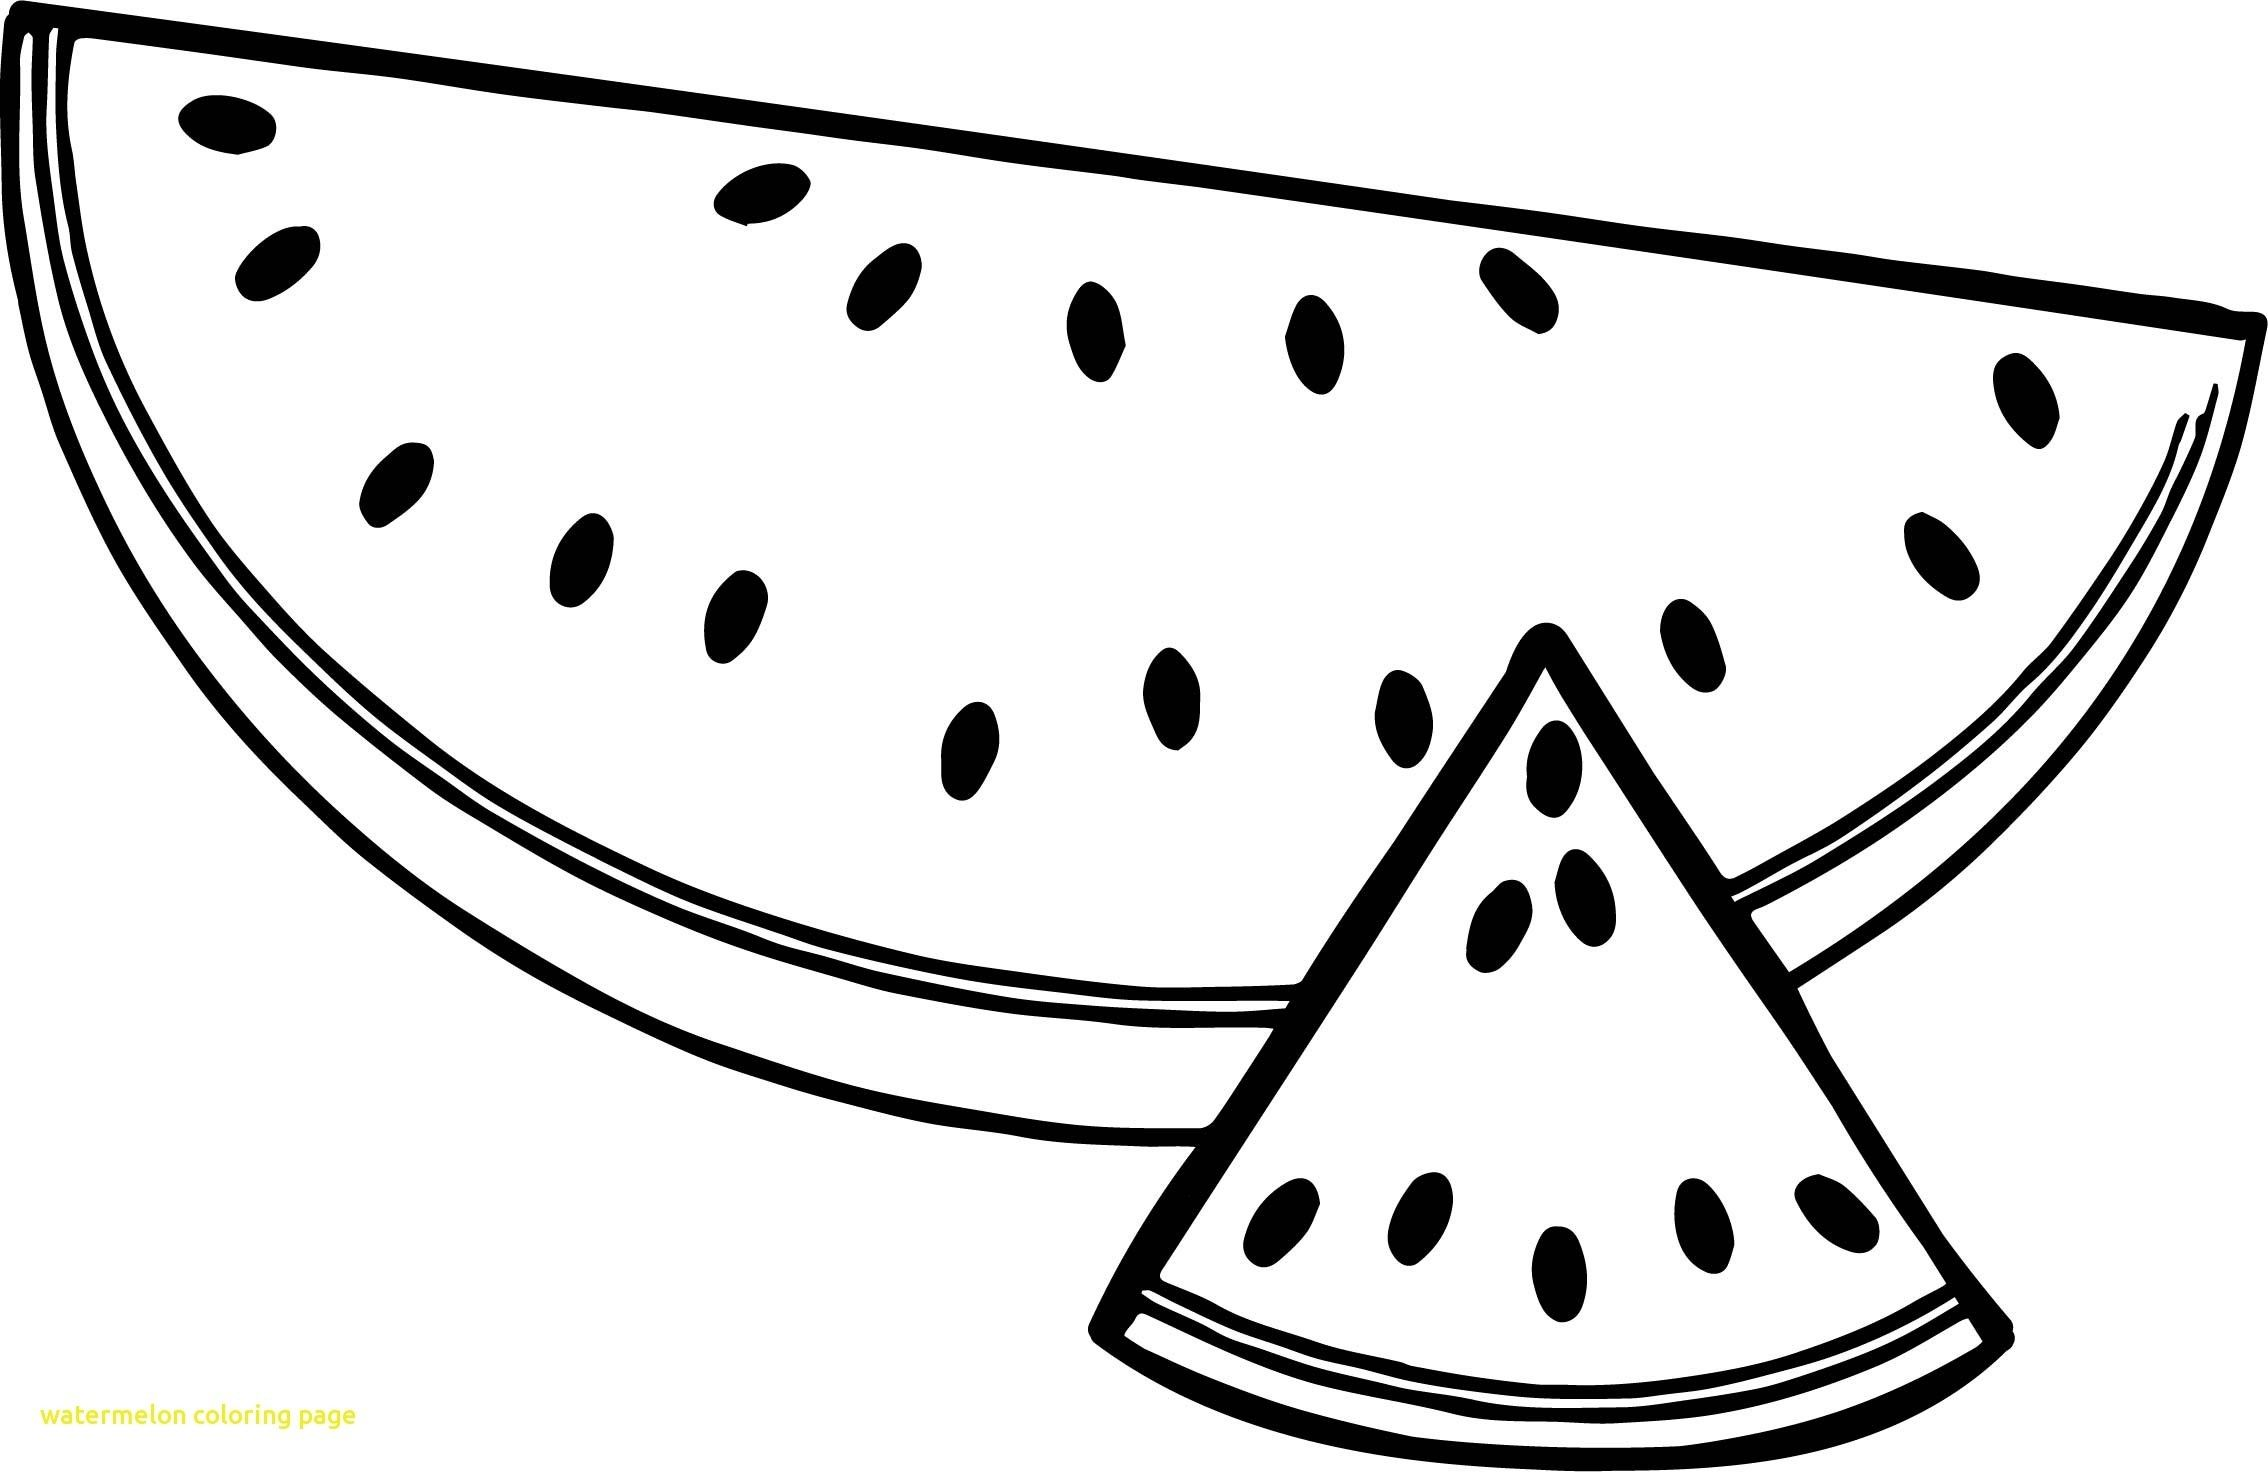 Awesome Watermelons Coloring Pages For Kids Fruits Watermelon Coloring Art Ph Fruit Coloring Pages Free Printable Coloring Pages Printable Coloring Pages